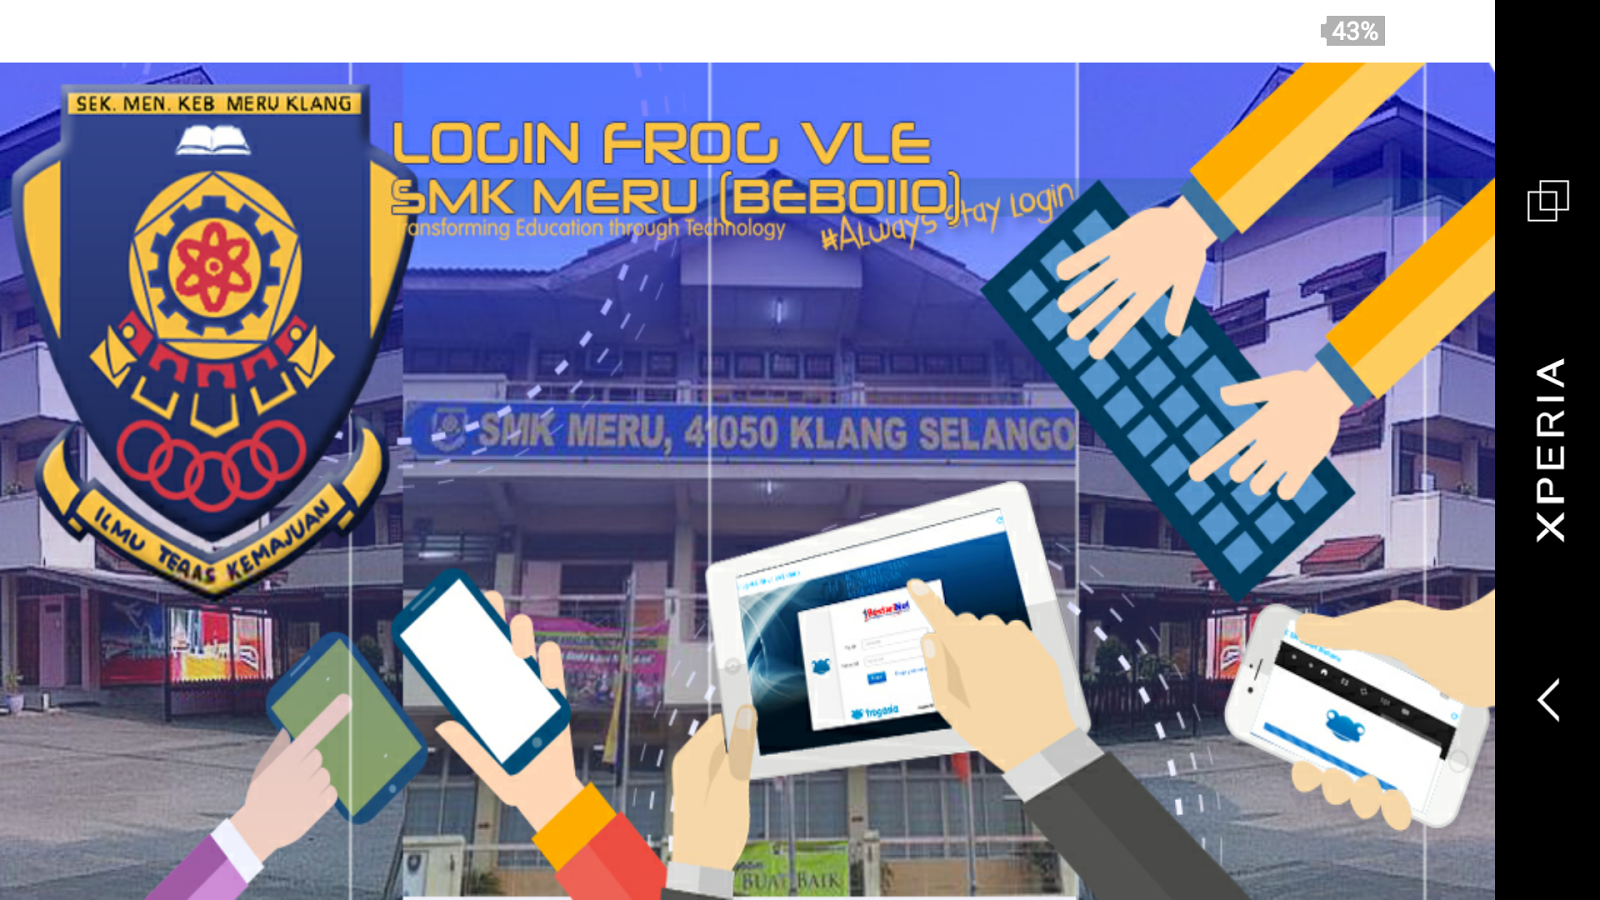 Frog VLE SMK Meru- screenshot